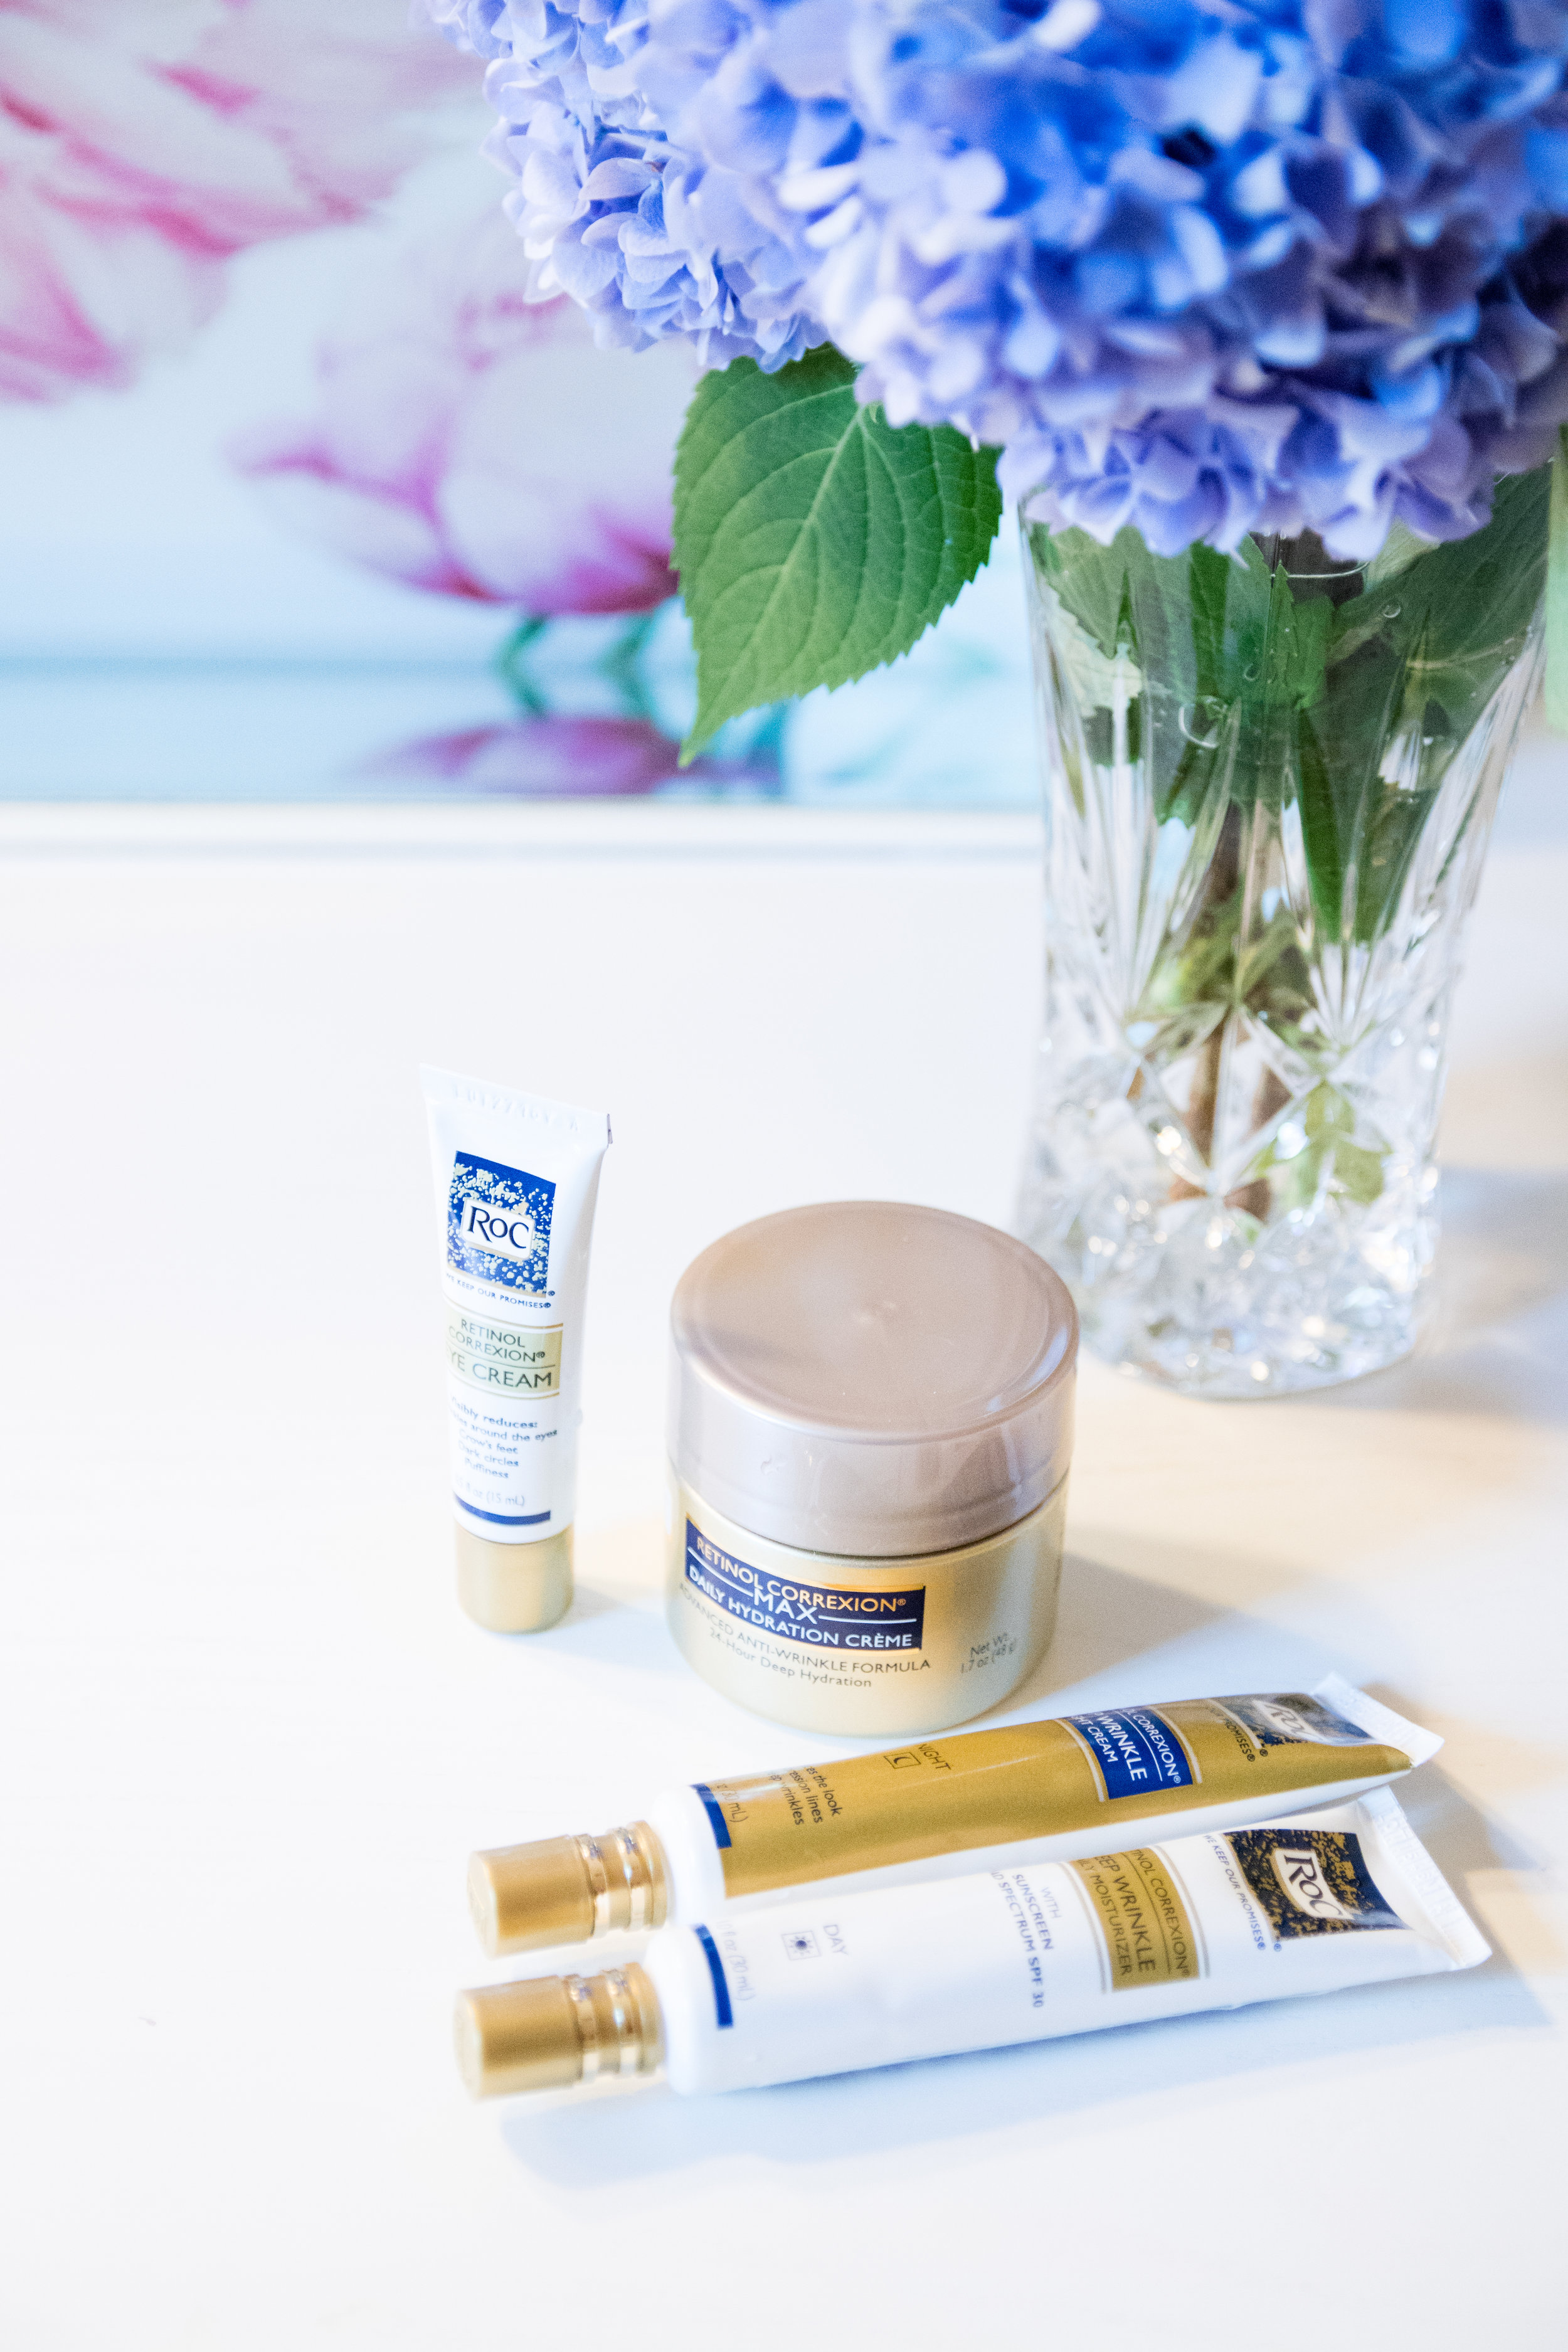 ROC Retinol Correction Products